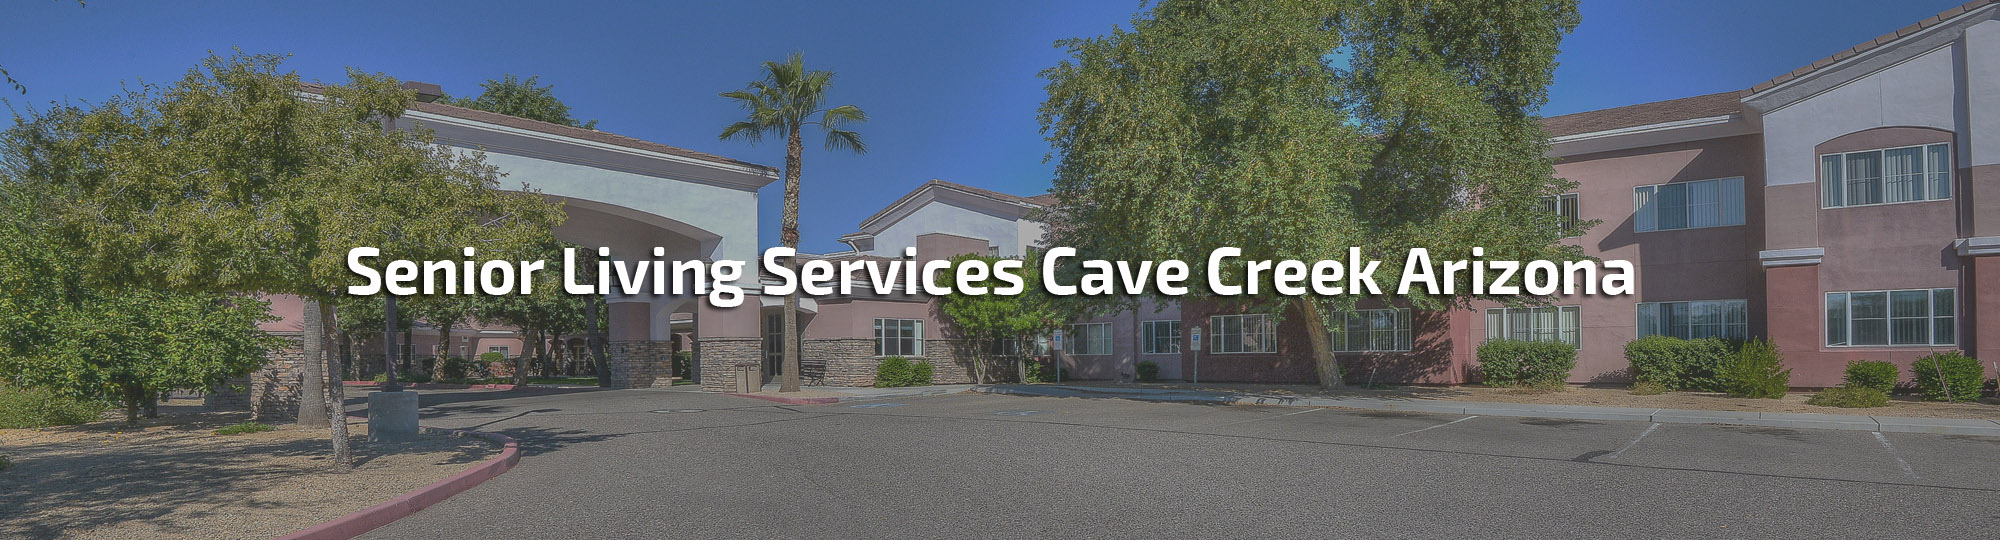 Senior Living Services Cave Creek Arizona